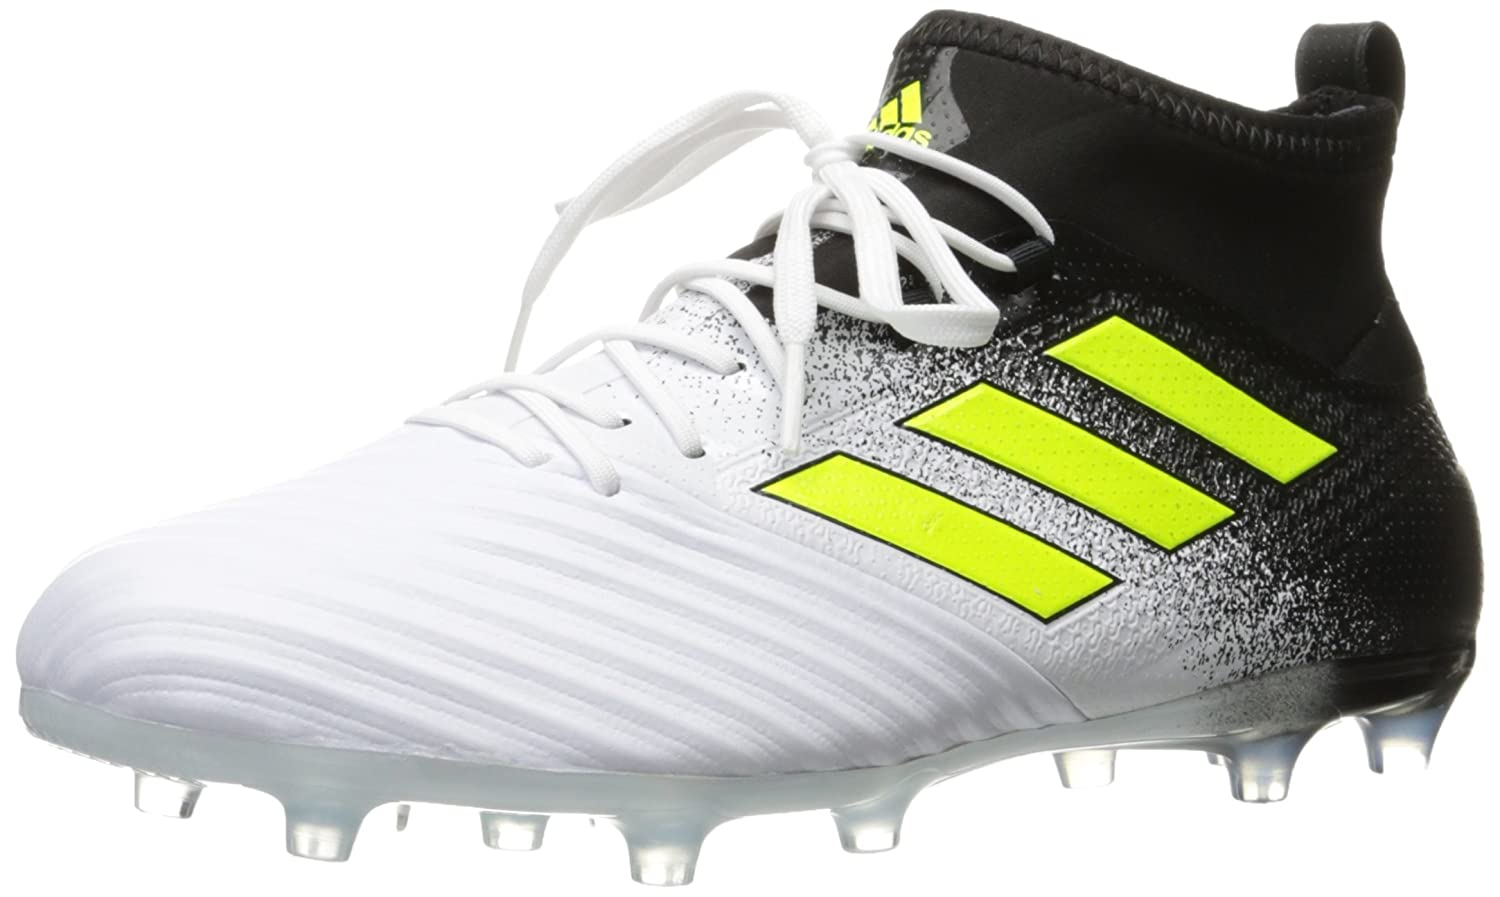 Adidas Originals Men's Ace 17.2 Firm Ground Cleats Soccer Schuhe, Weiß Solar Yellow schwarz, (9 M US)